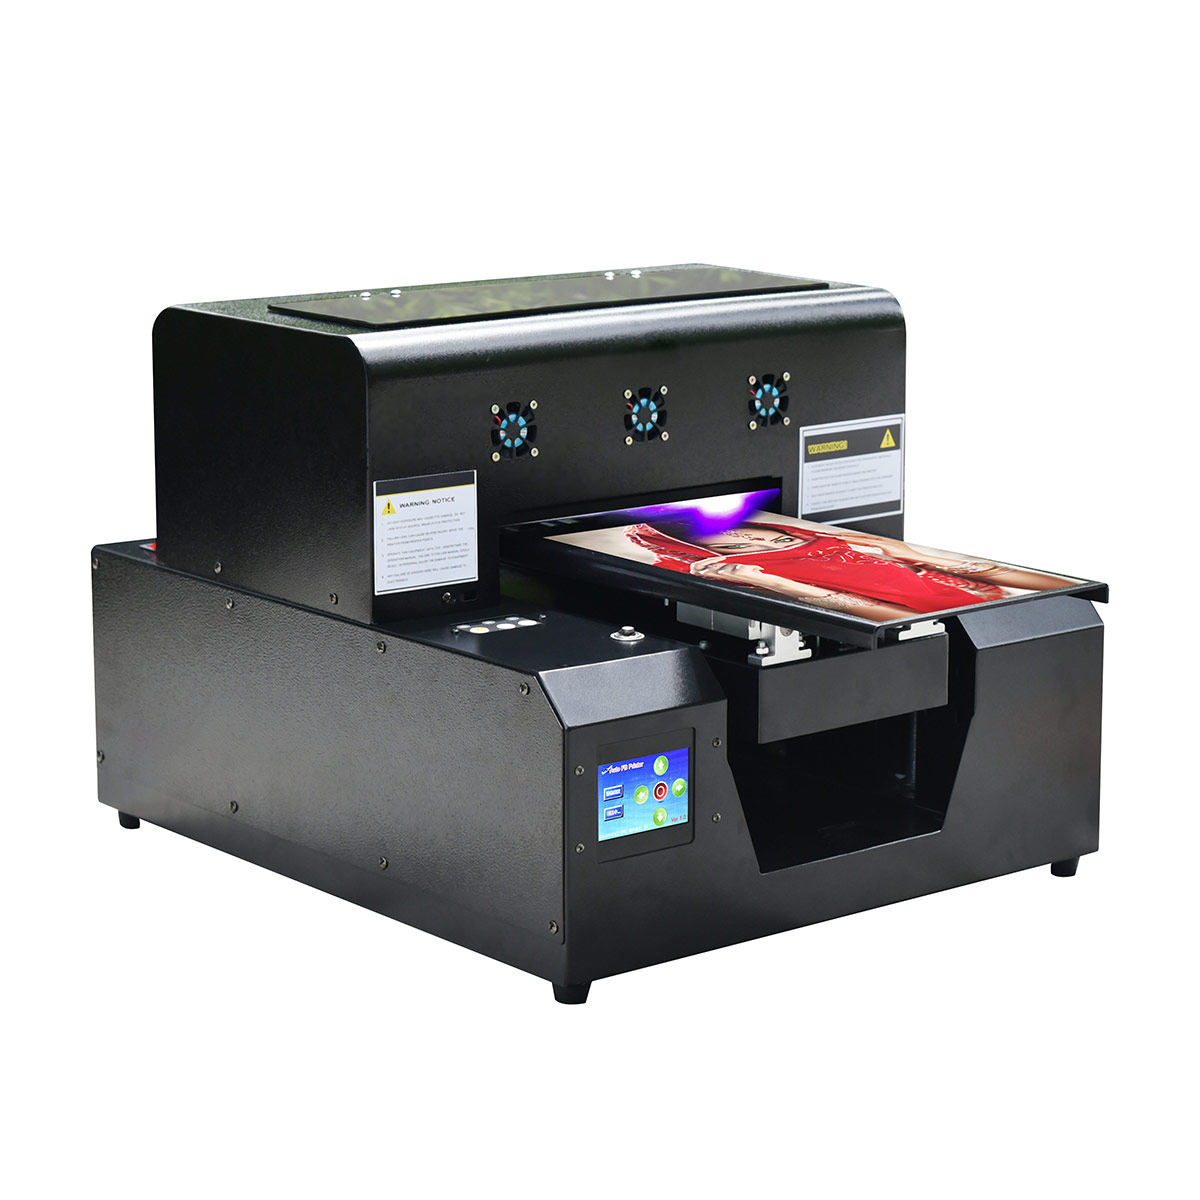 Digital Harga Printer Multifungsi Flatbed A4 Kertas Printer Uv Printer Inkjet